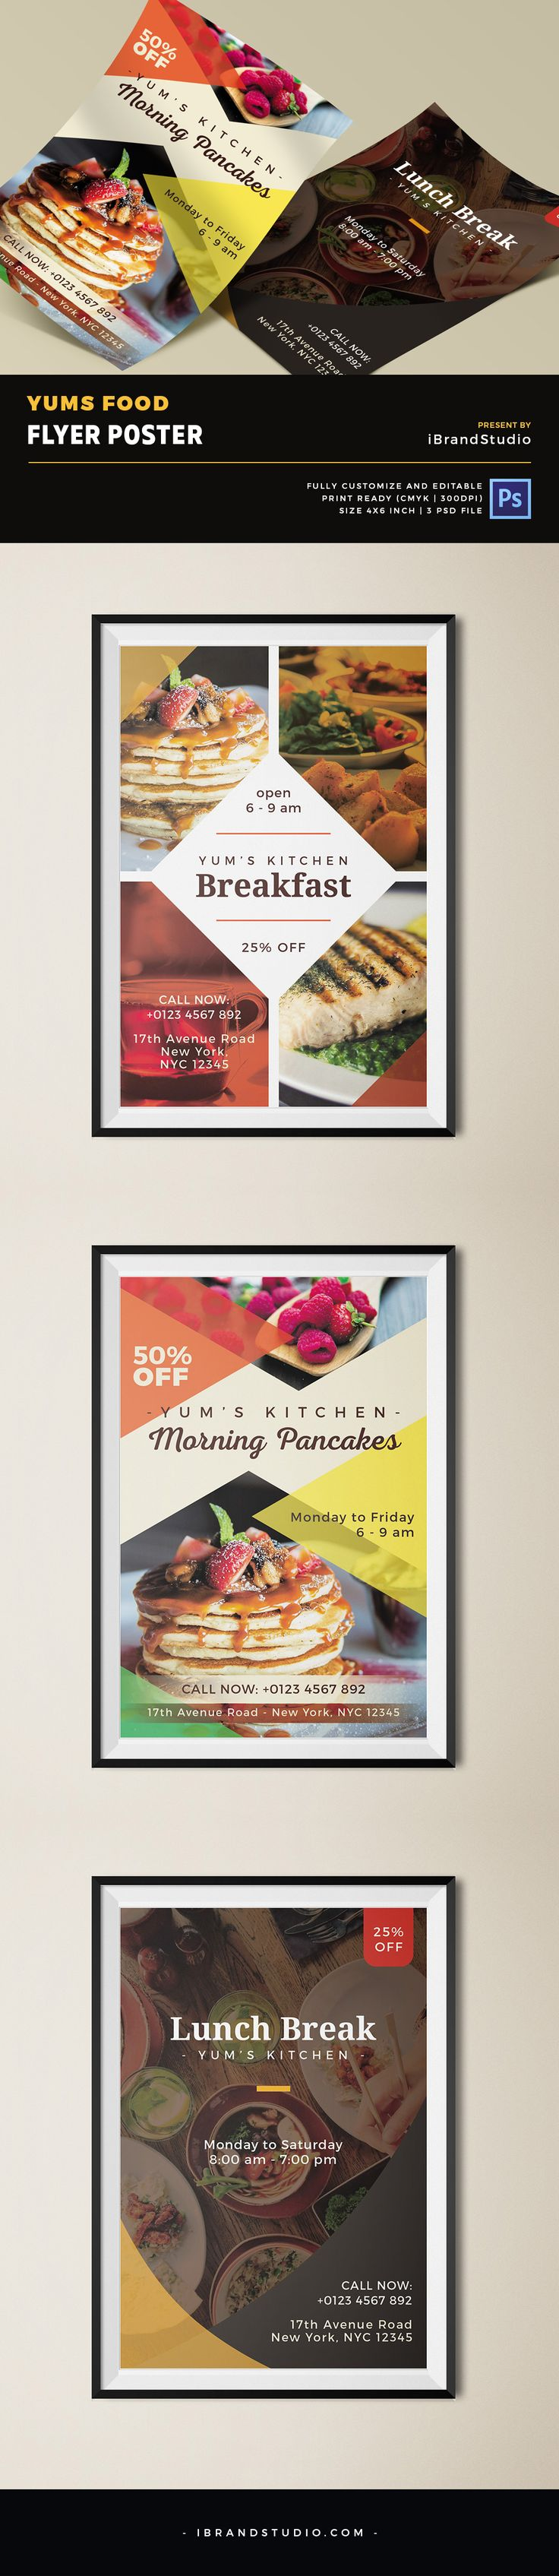 Yums Food - Free Business Flyer Template